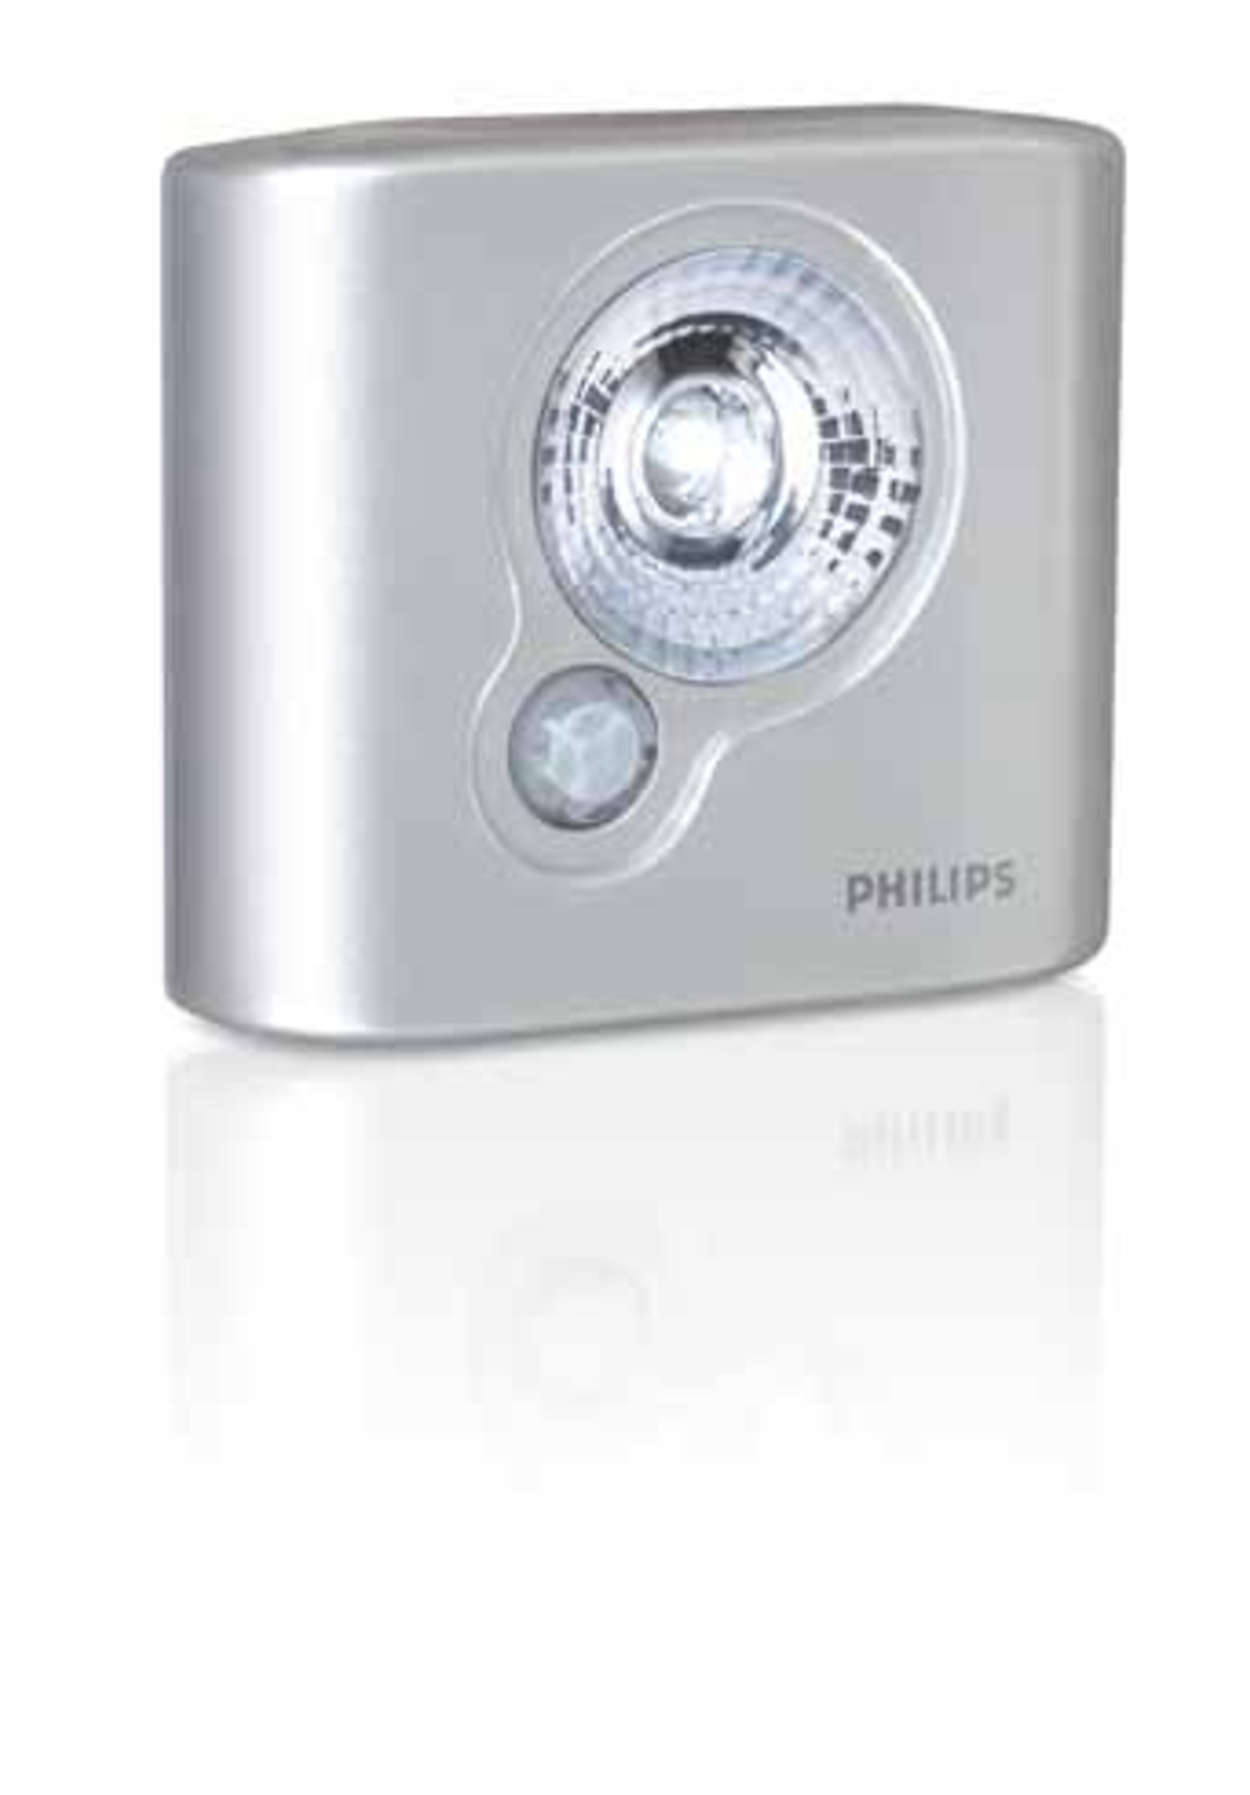 https://images.philips.com/is/image/PhilipsConsumer/LAC52AWSB_10-IMS-nl_NL?$jpglarge$&wid=1250